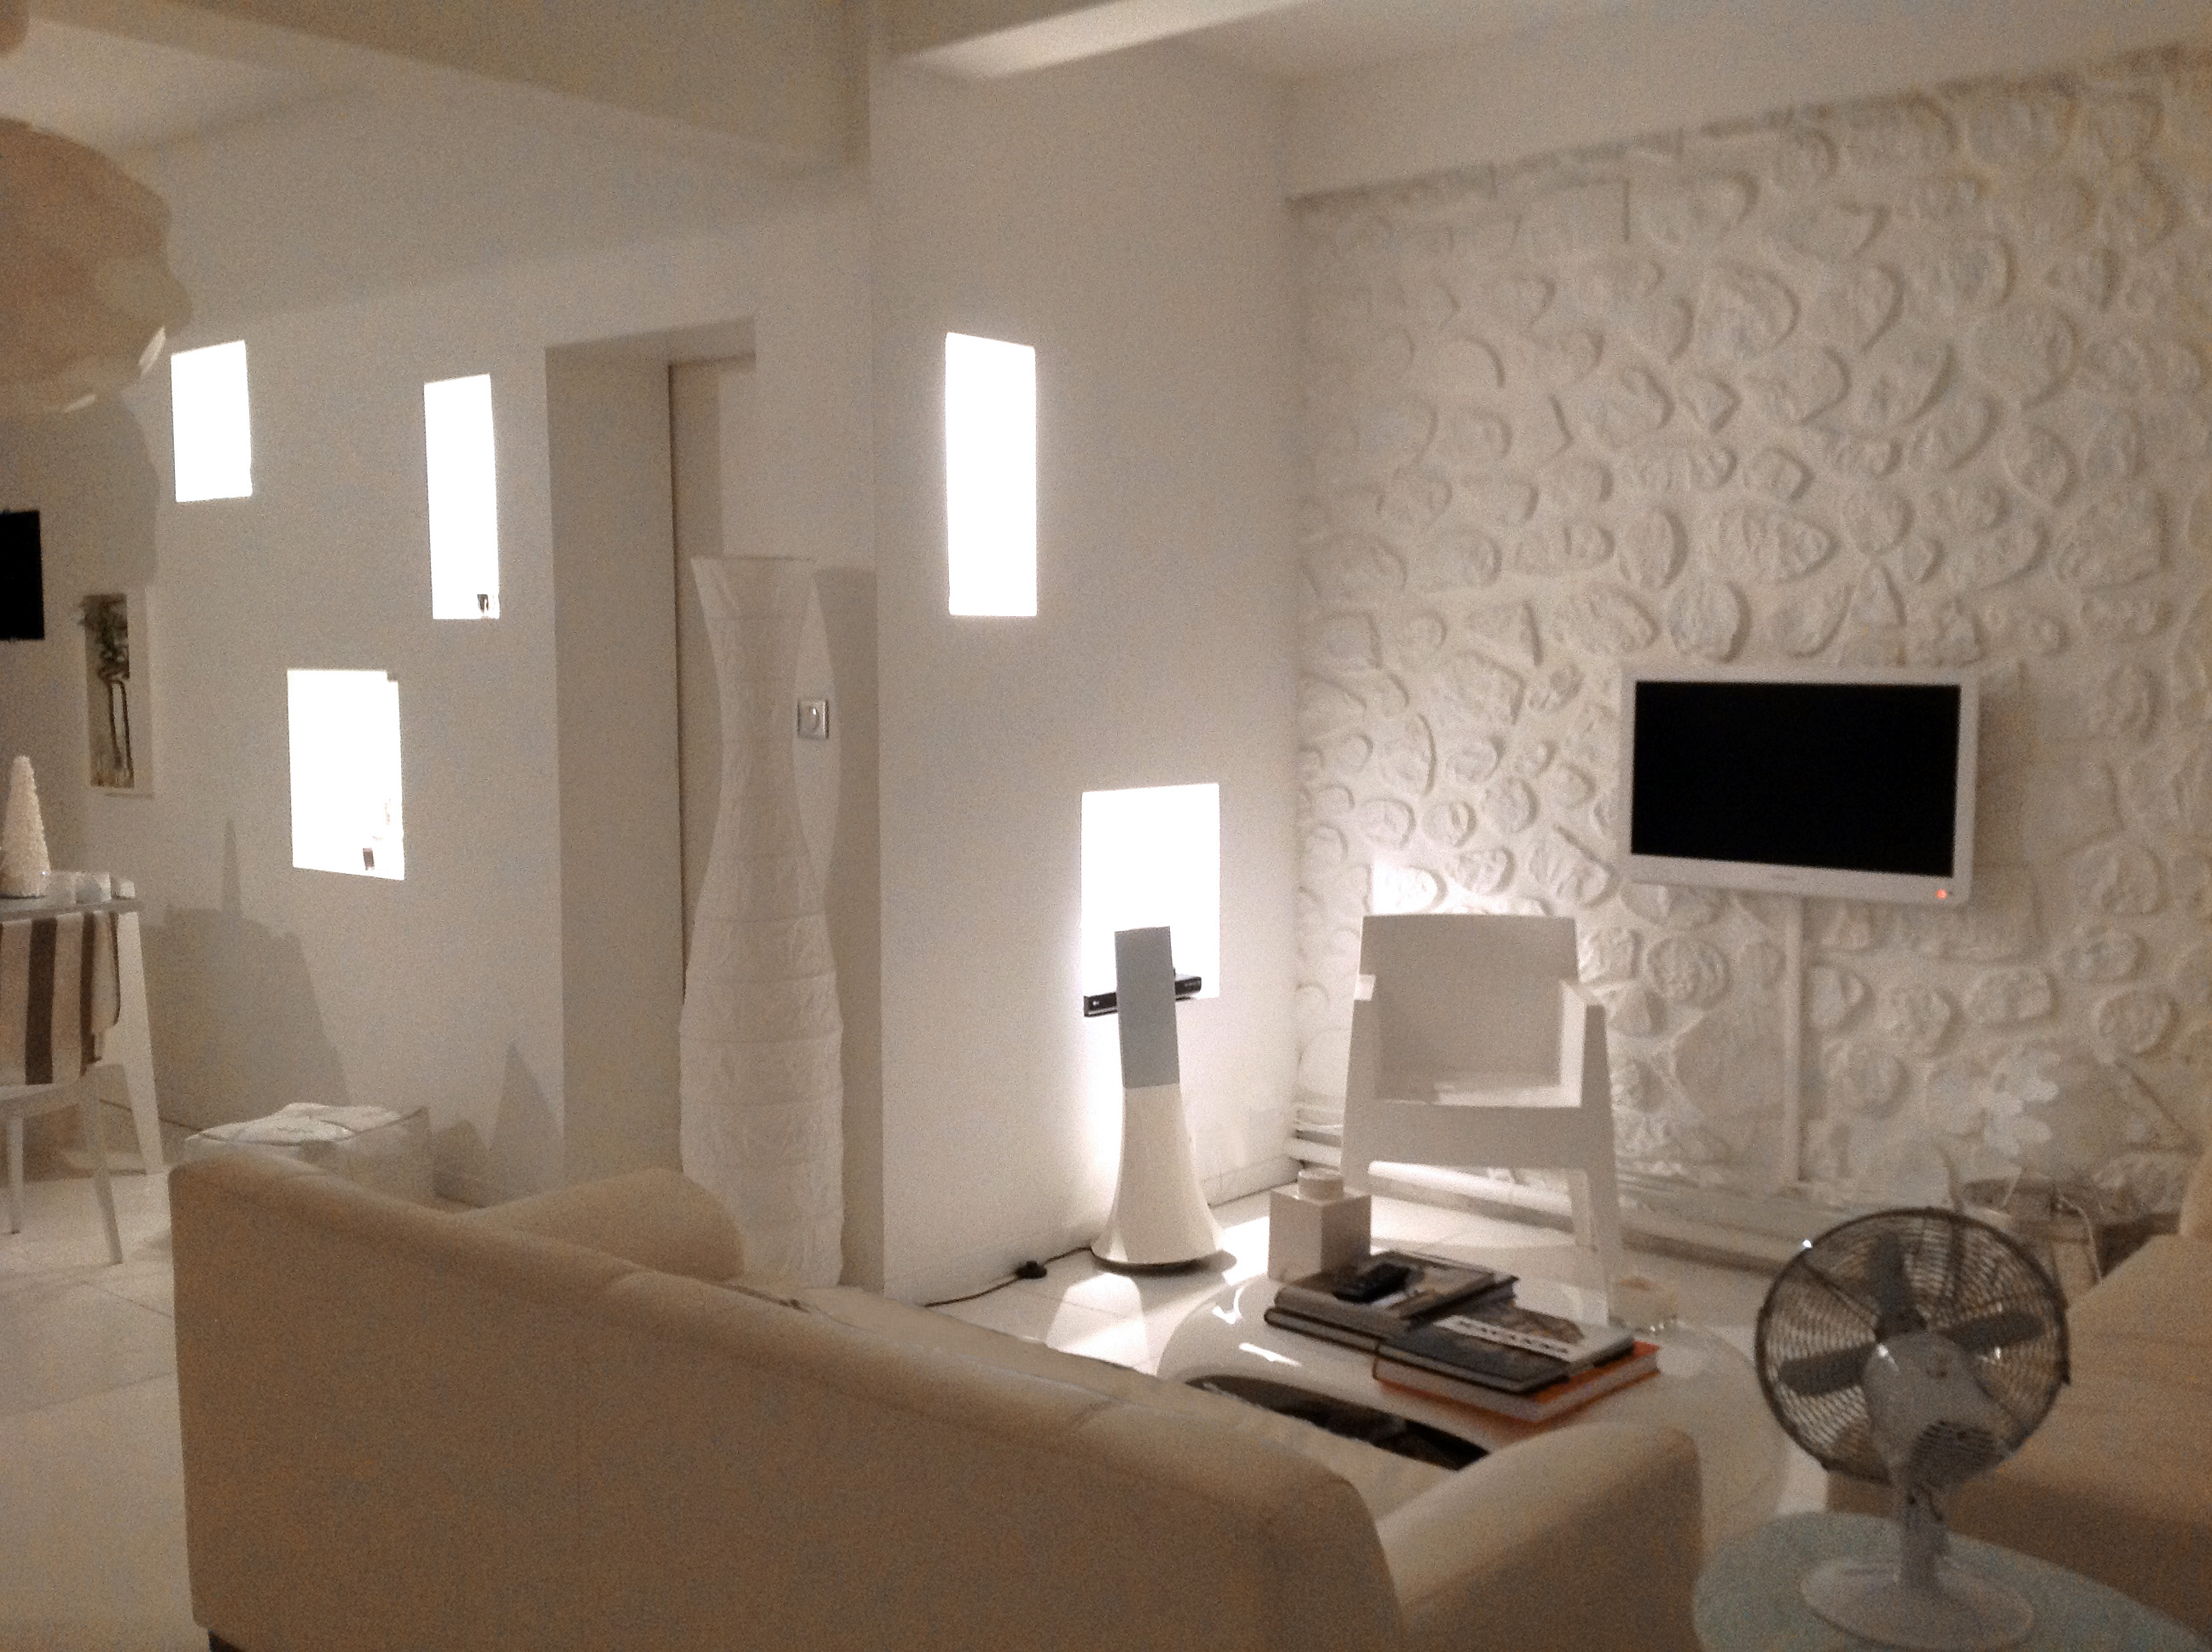 Mod le d coration salon blanc for Modele de decoration interieure maison